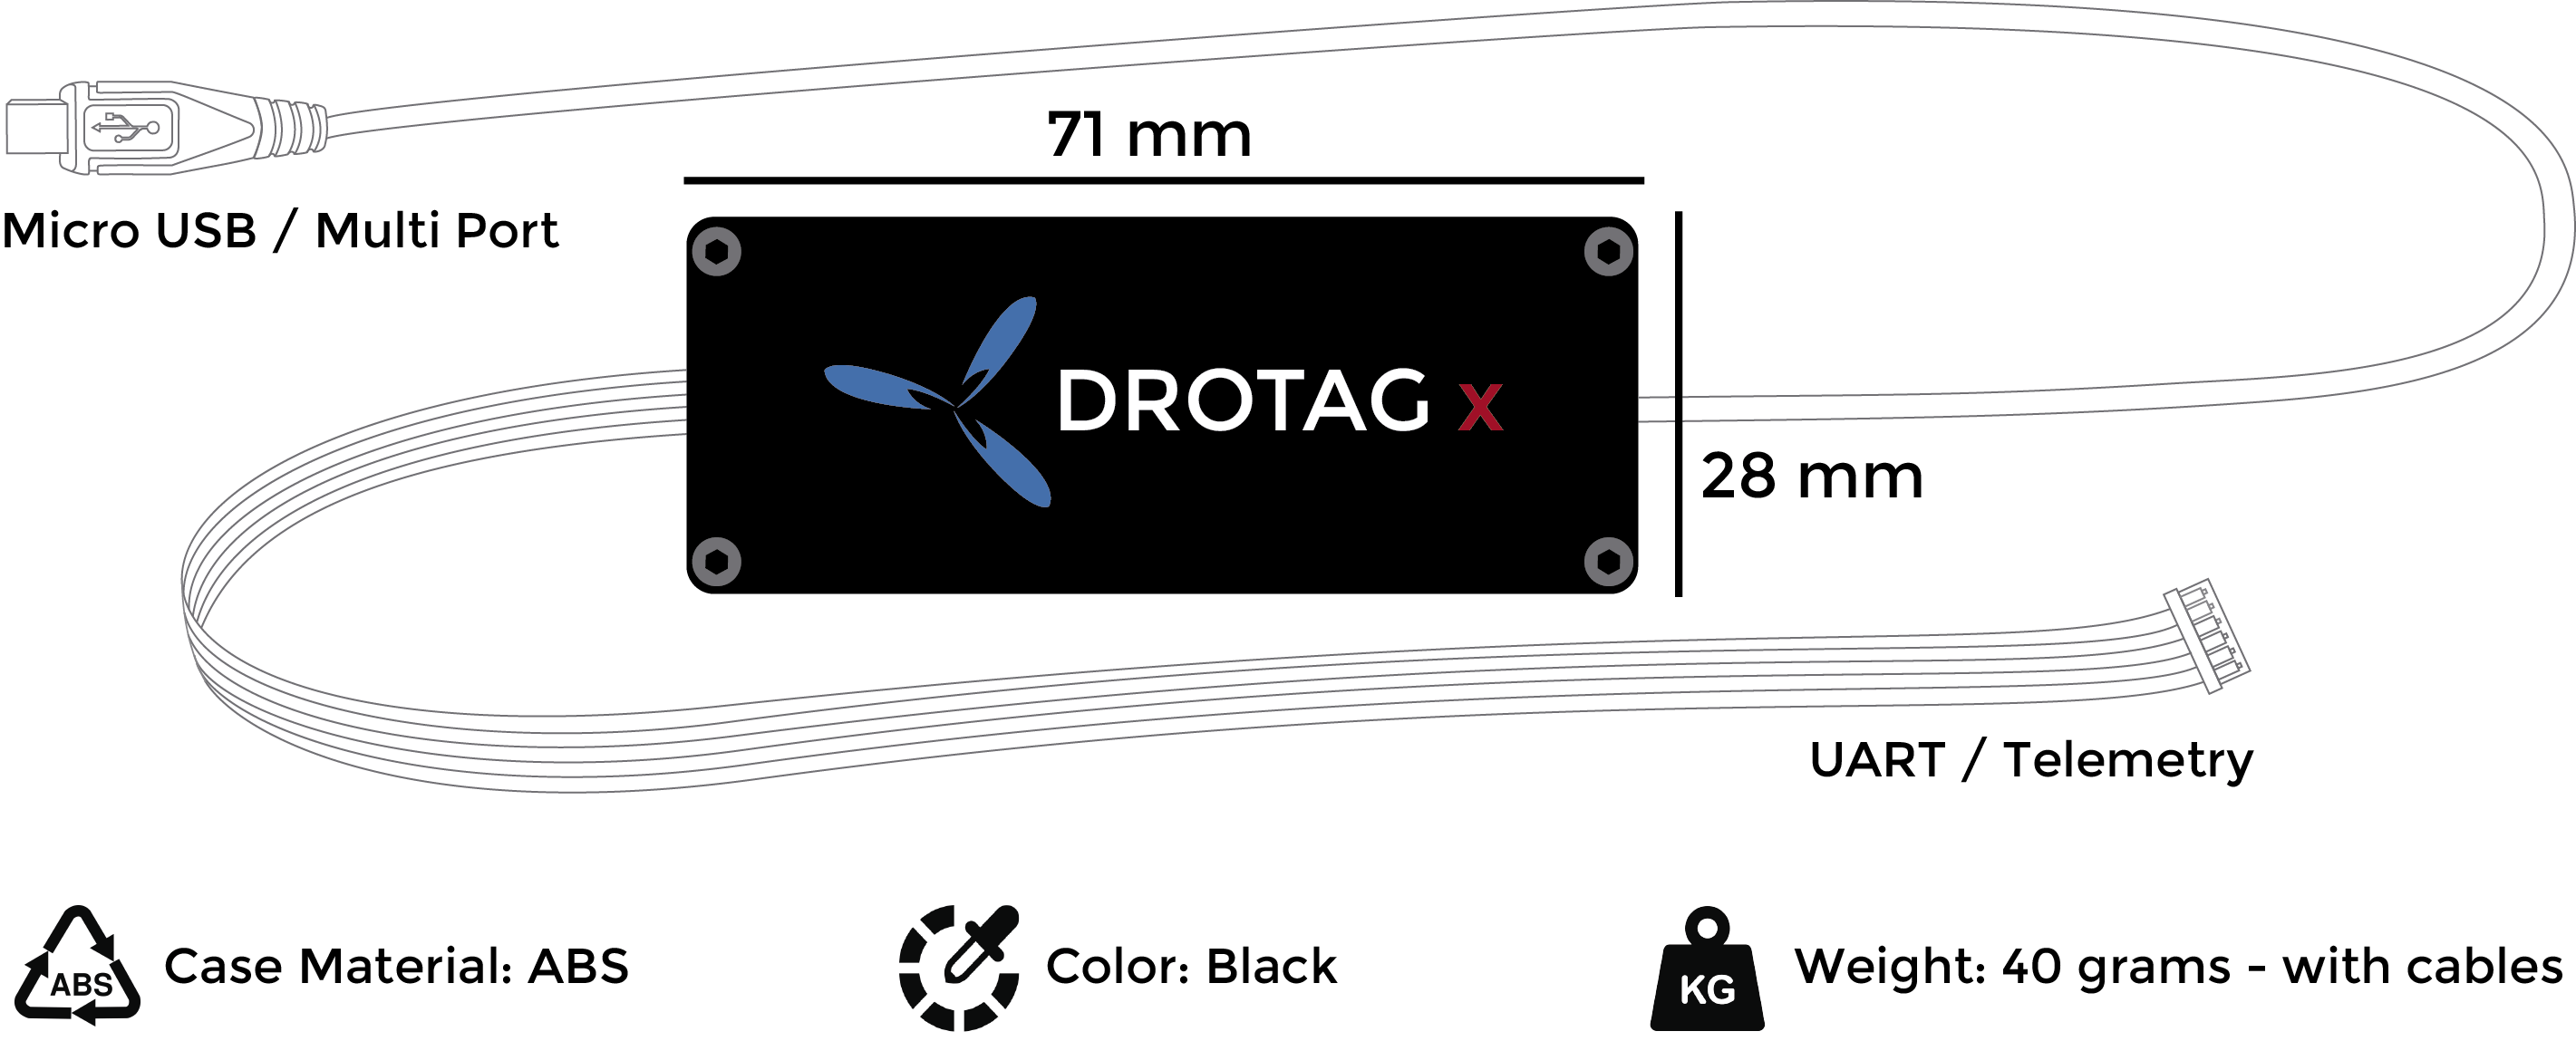 Drotag X Onboard Image Tagging Computer Airborne Projects